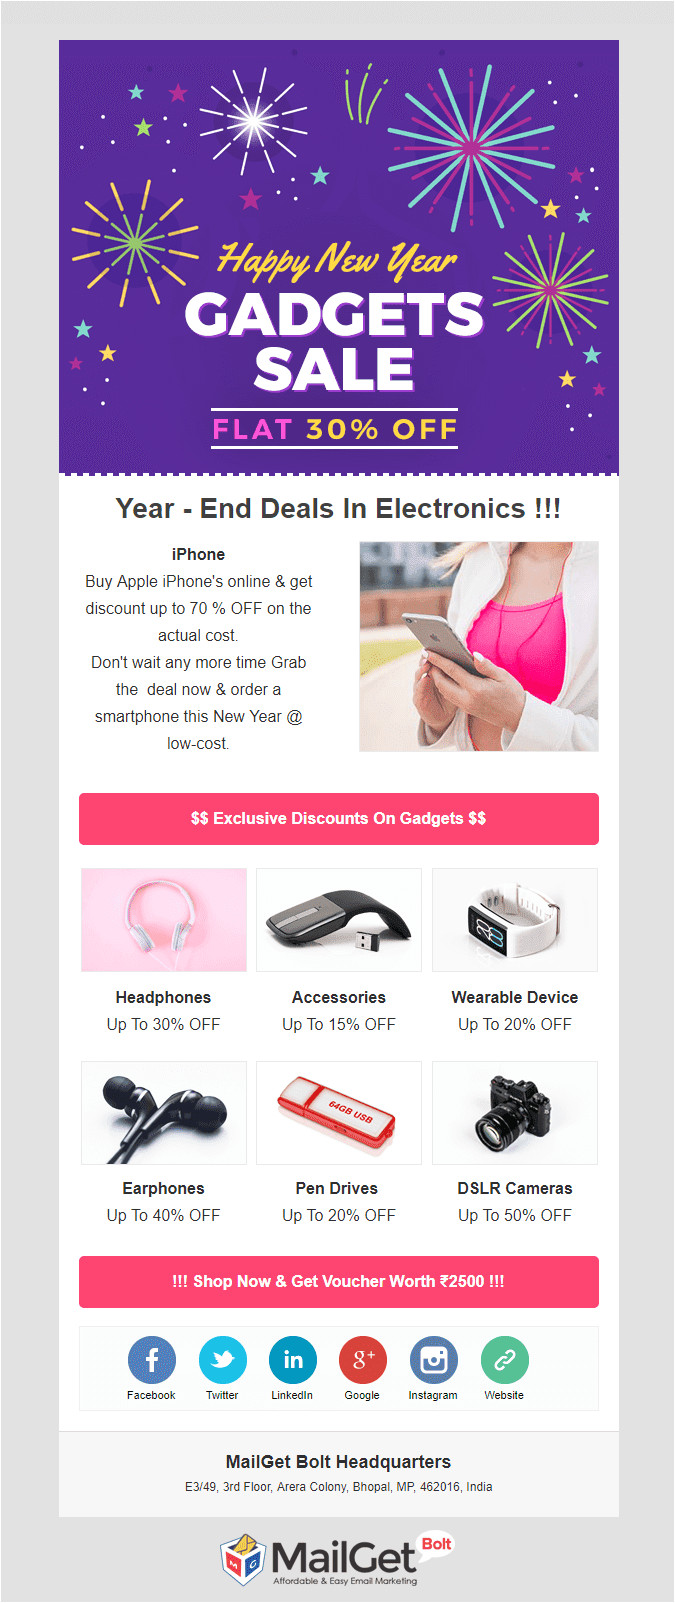 Happy New Year Email Template Free Download 5 New Year Holiday Email Templates 0 Download now